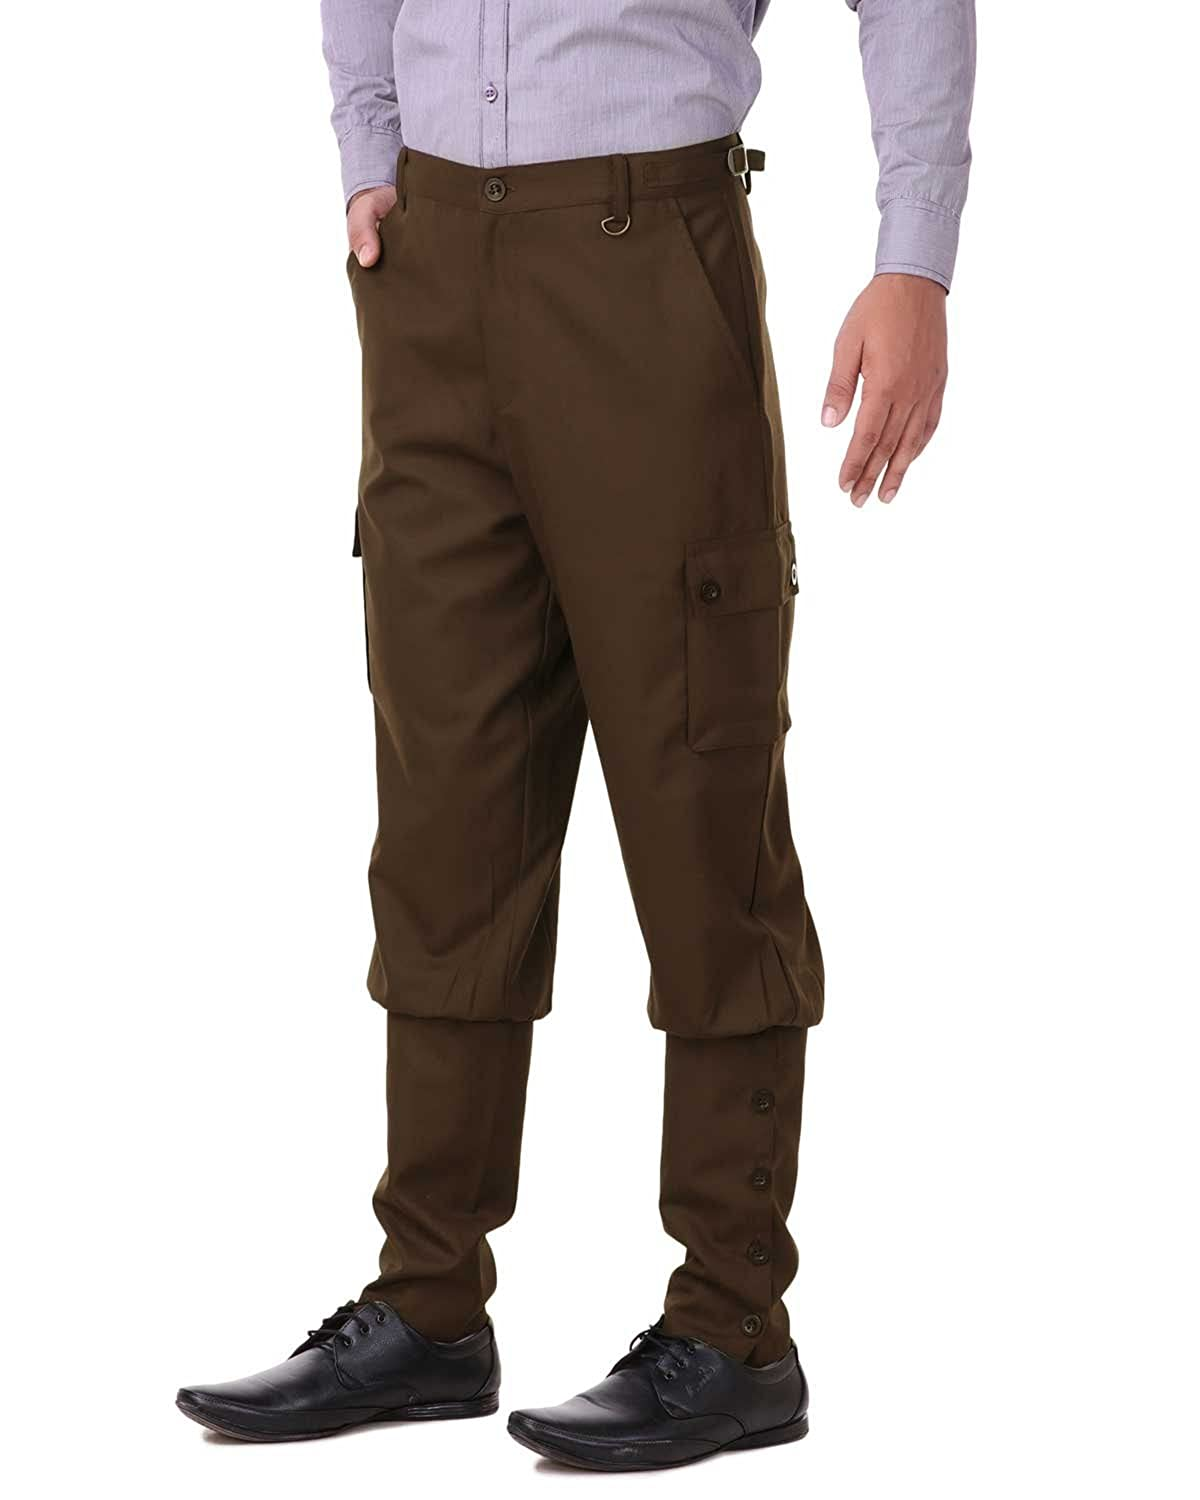 Men's Vintage Pants, Trousers, Jeans, Overalls Steampunk Victorian Cosplay Costume Mens Airship Pants Trousers ThePirateDressing $59.09 AT vintagedancer.com